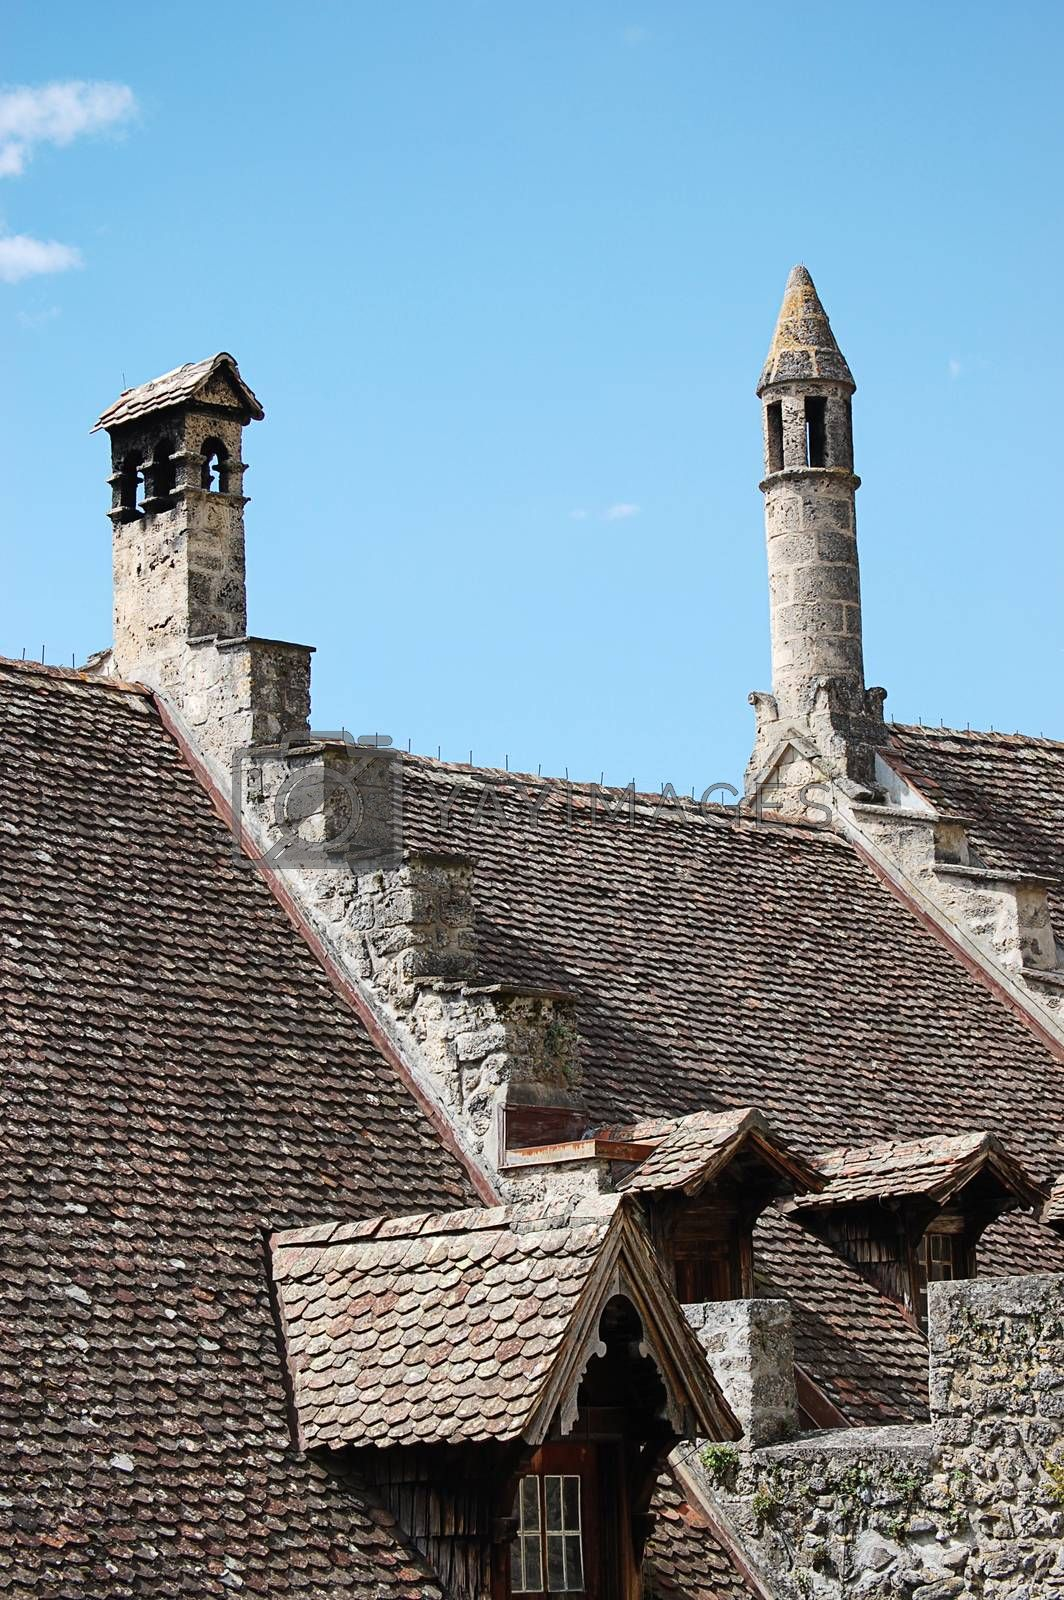 The a roof Chillon castle in Switzerland